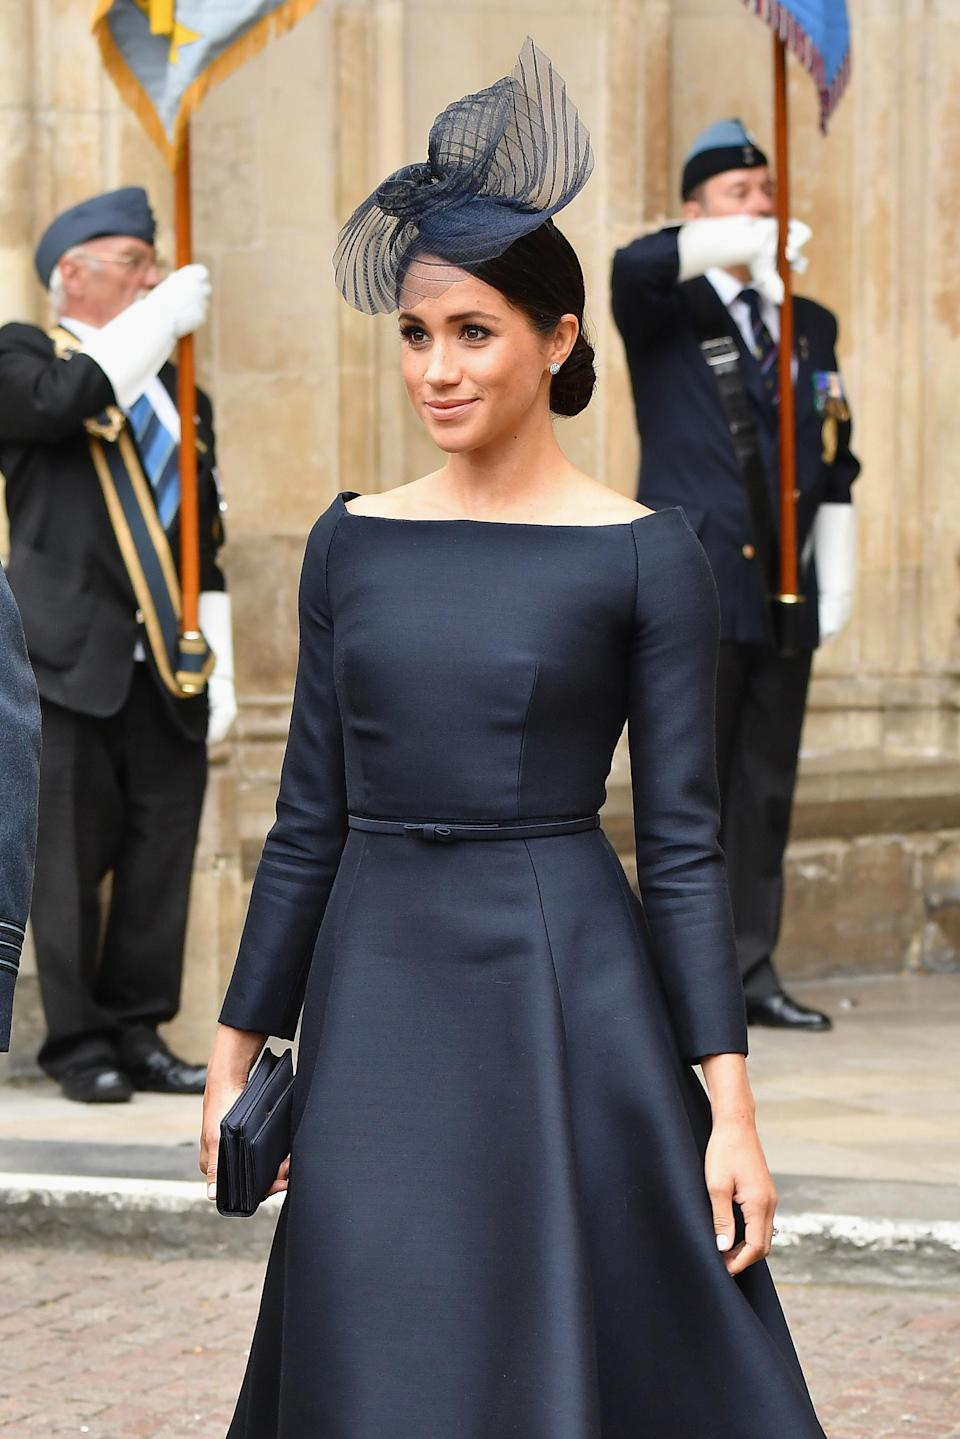 <p>On July 10, the Duchess of Sussex donned an off-the-shoulder Dior dress and co-ordinating fascinator for the RAF's centenary celebrations. To finish the regal aesthetic, she opted for a smart low bun. <em>[Photo: Getty]</em> </p>